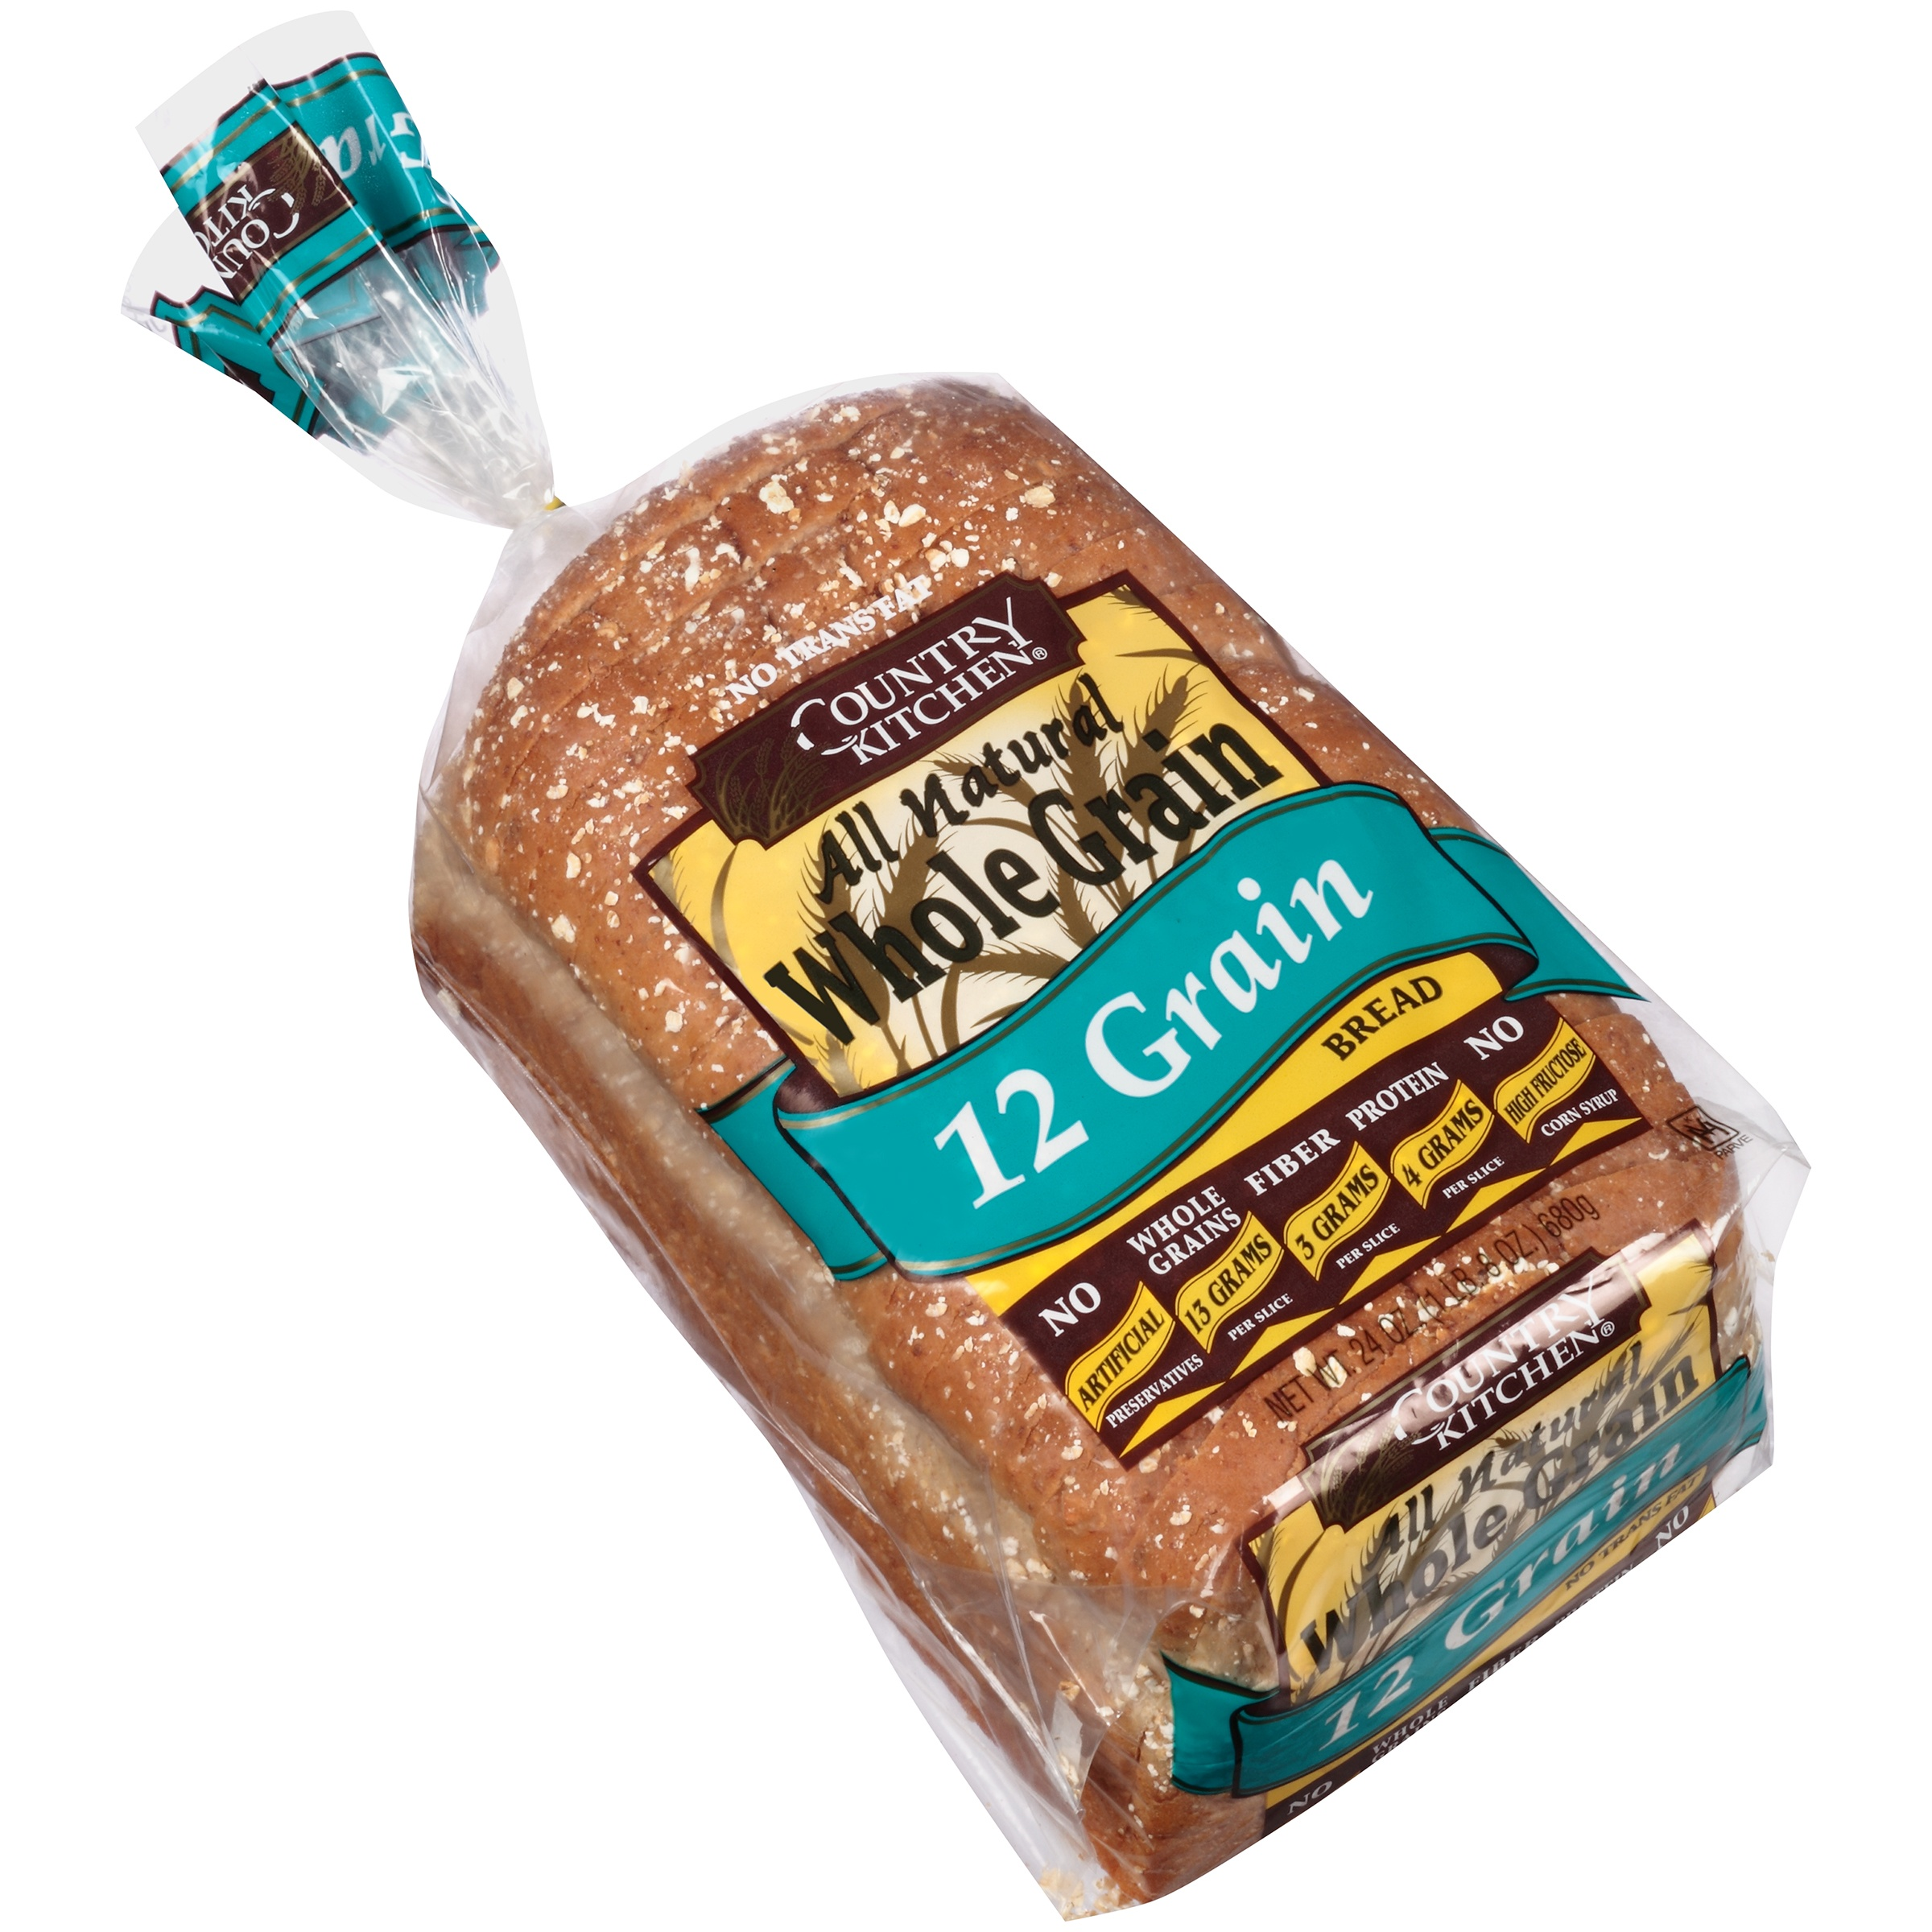 Country Kitchen All Natural Whole Grain 12 Bread 24 Oz Bag